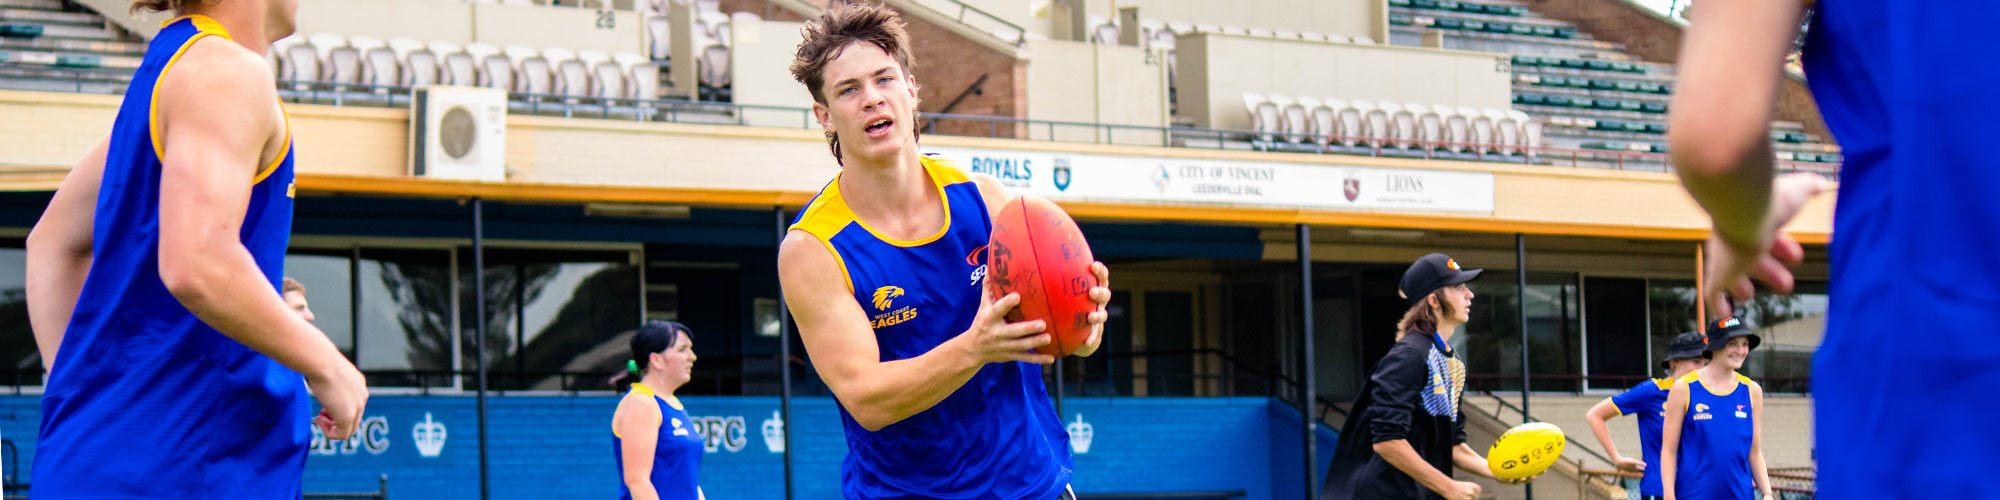 West Coast Eagles student playing footy SEDA College WA